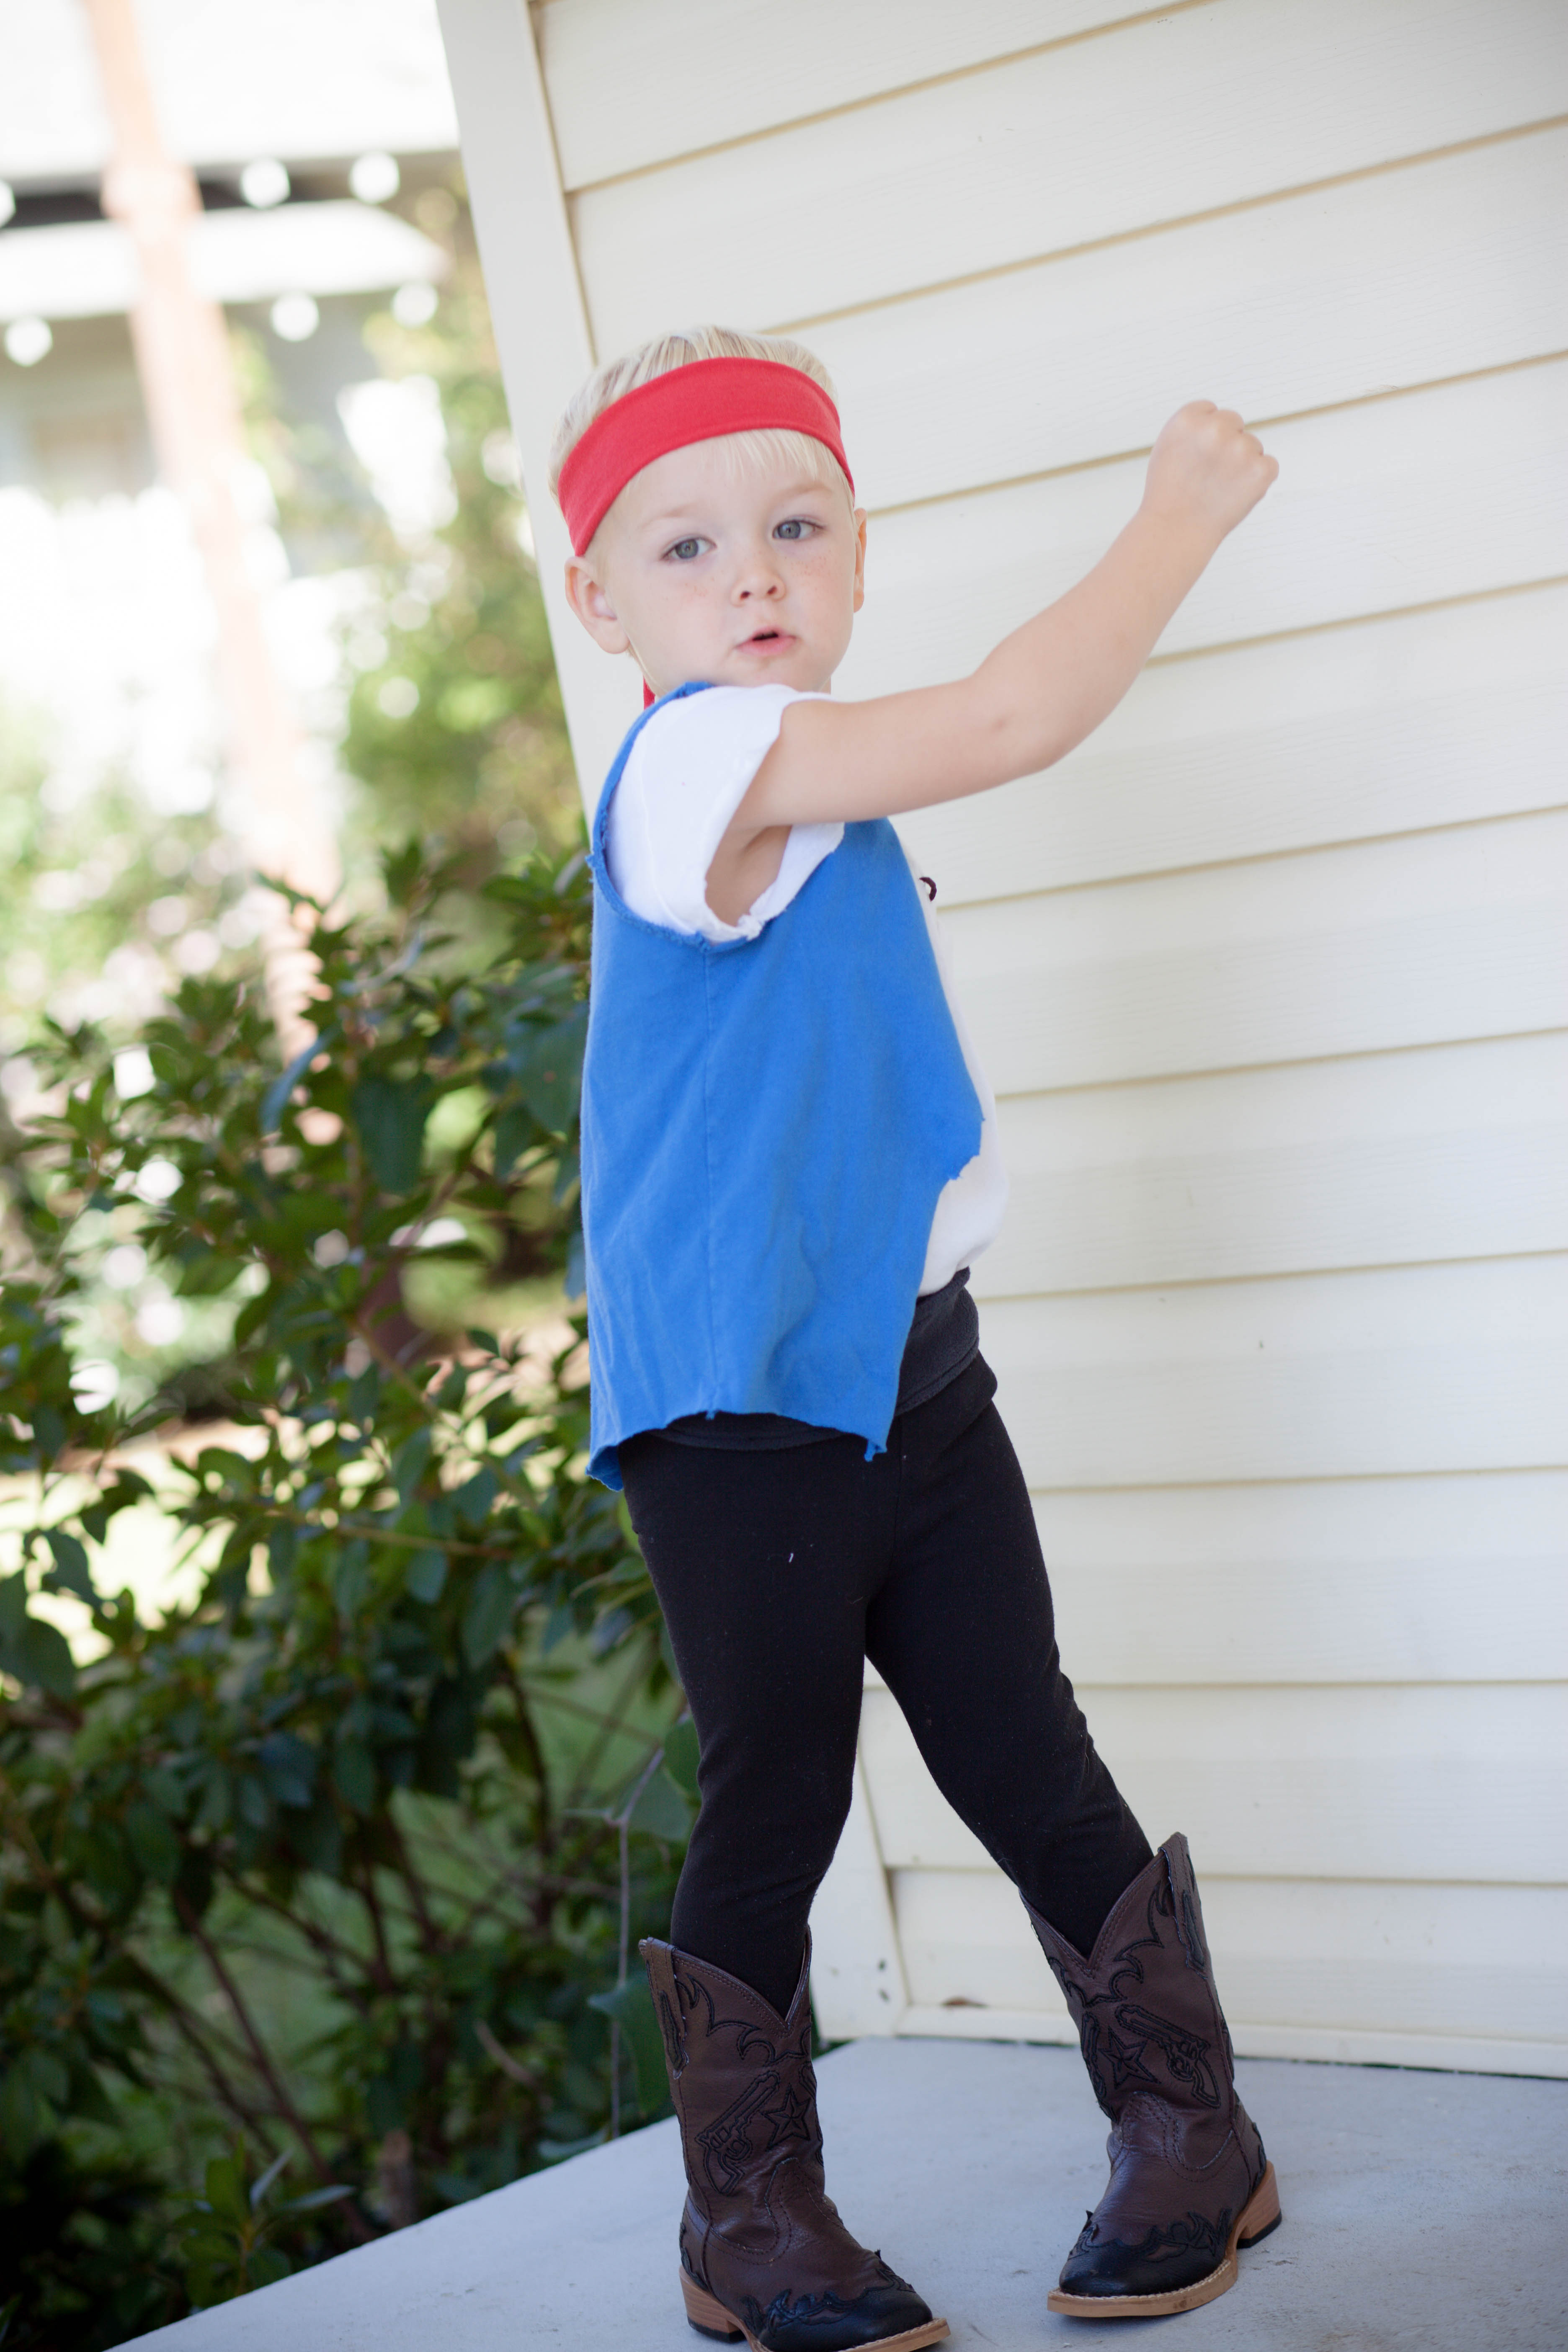 DIY Pirate Costume (Thrifted Pieces) (1 of 3)